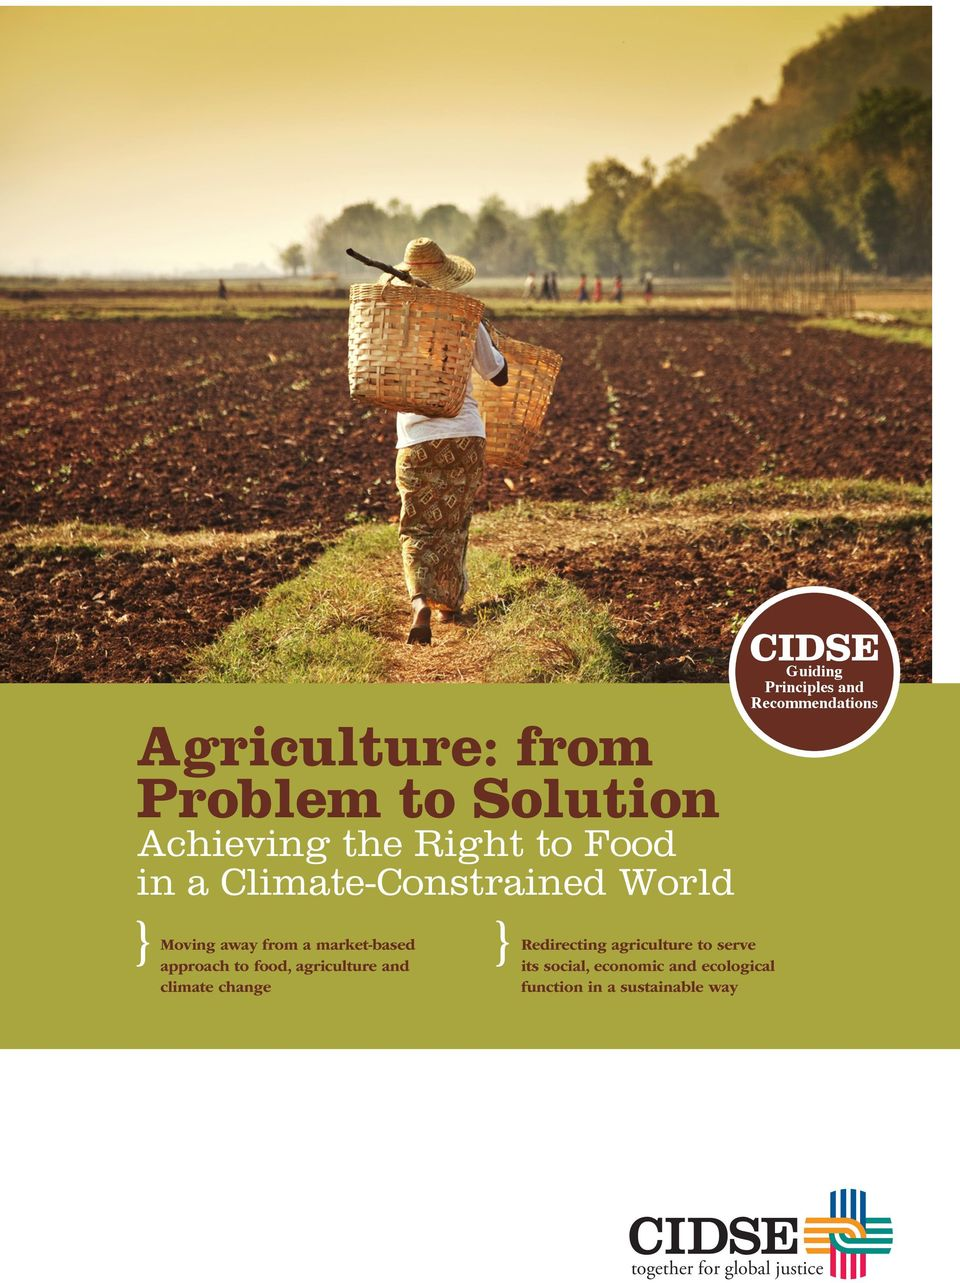 agriculture and climate change Redirecting agriculture to serve its social, economic and